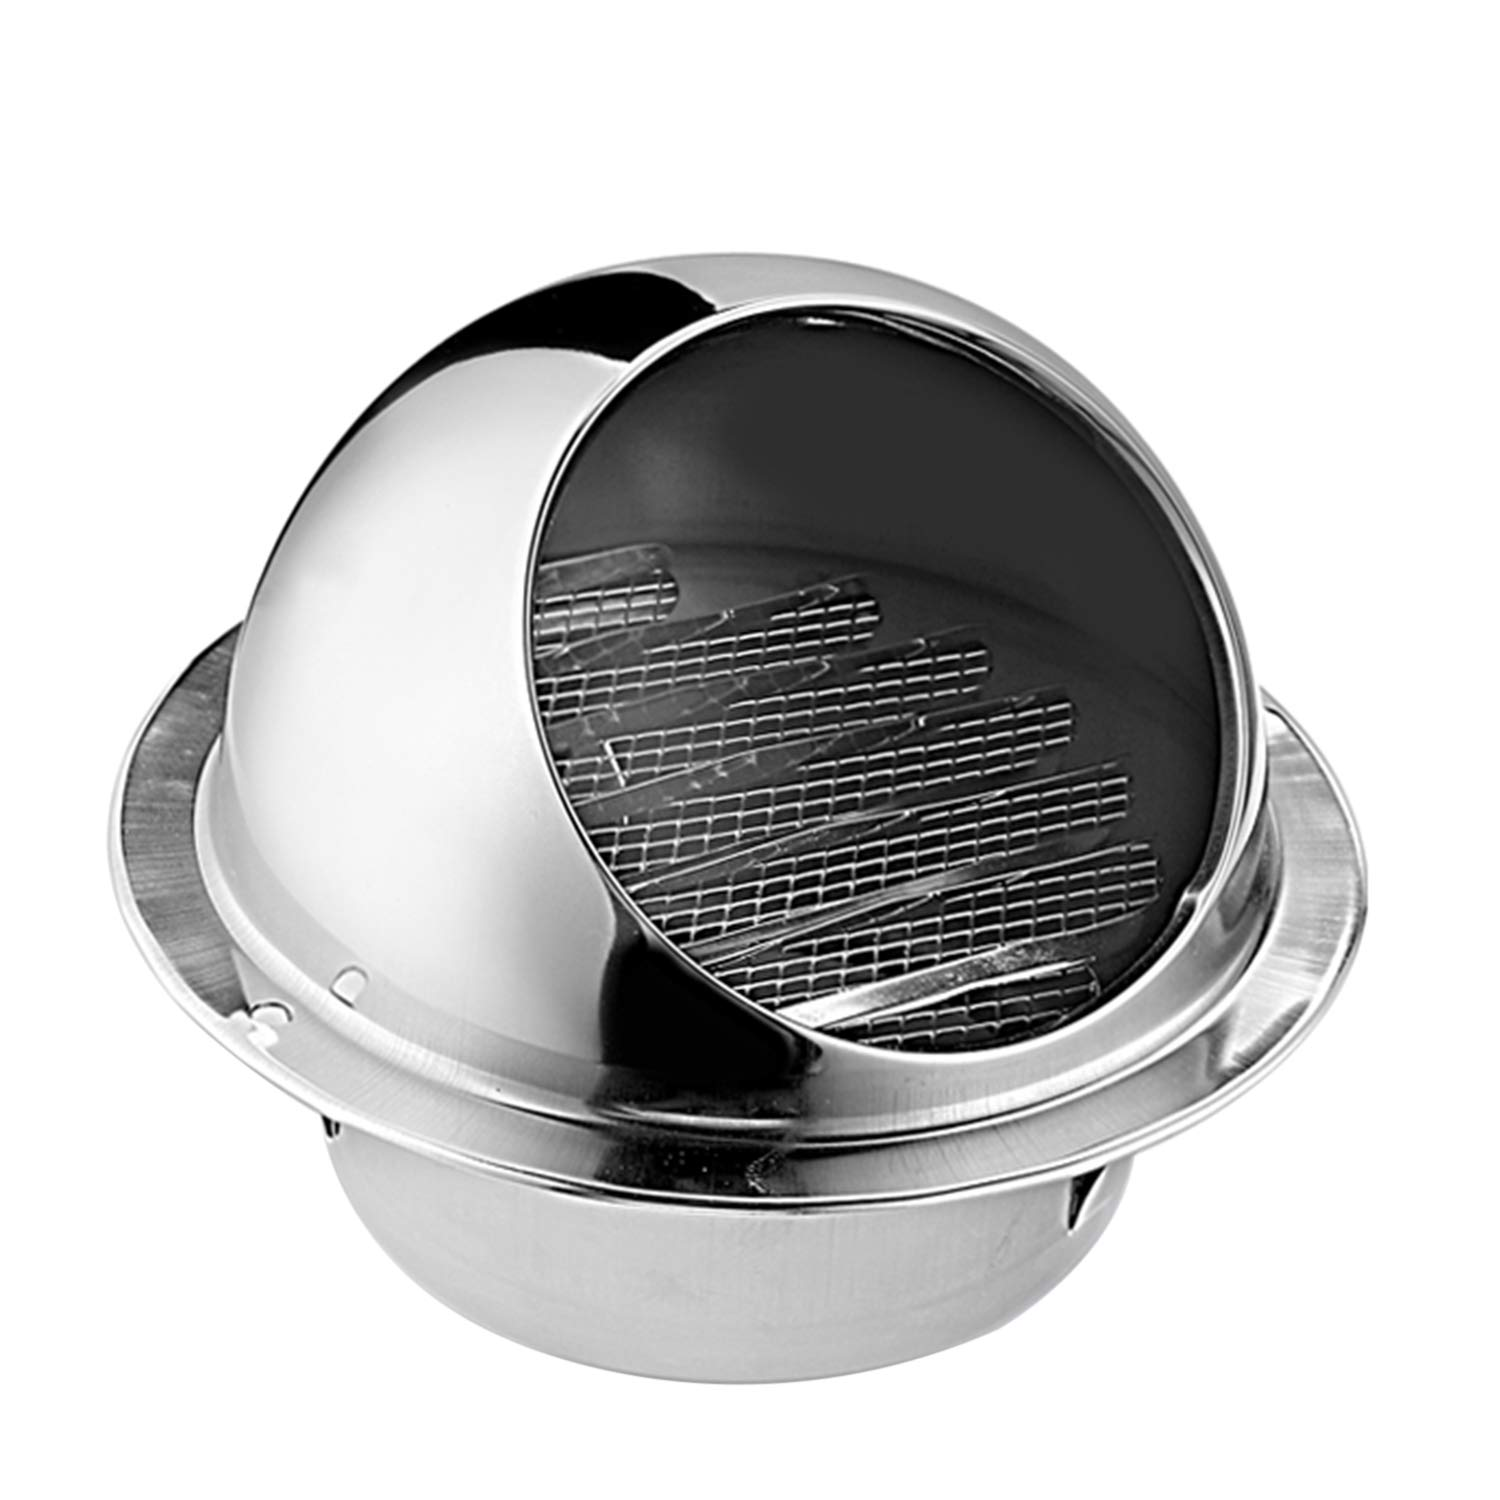 Hon/&Guan 4 inch 304 Thick Stainless Steel Air Vent Sphere Ventilation Grill Cover Hooded Cowl External Extractor Wall Air Outlet